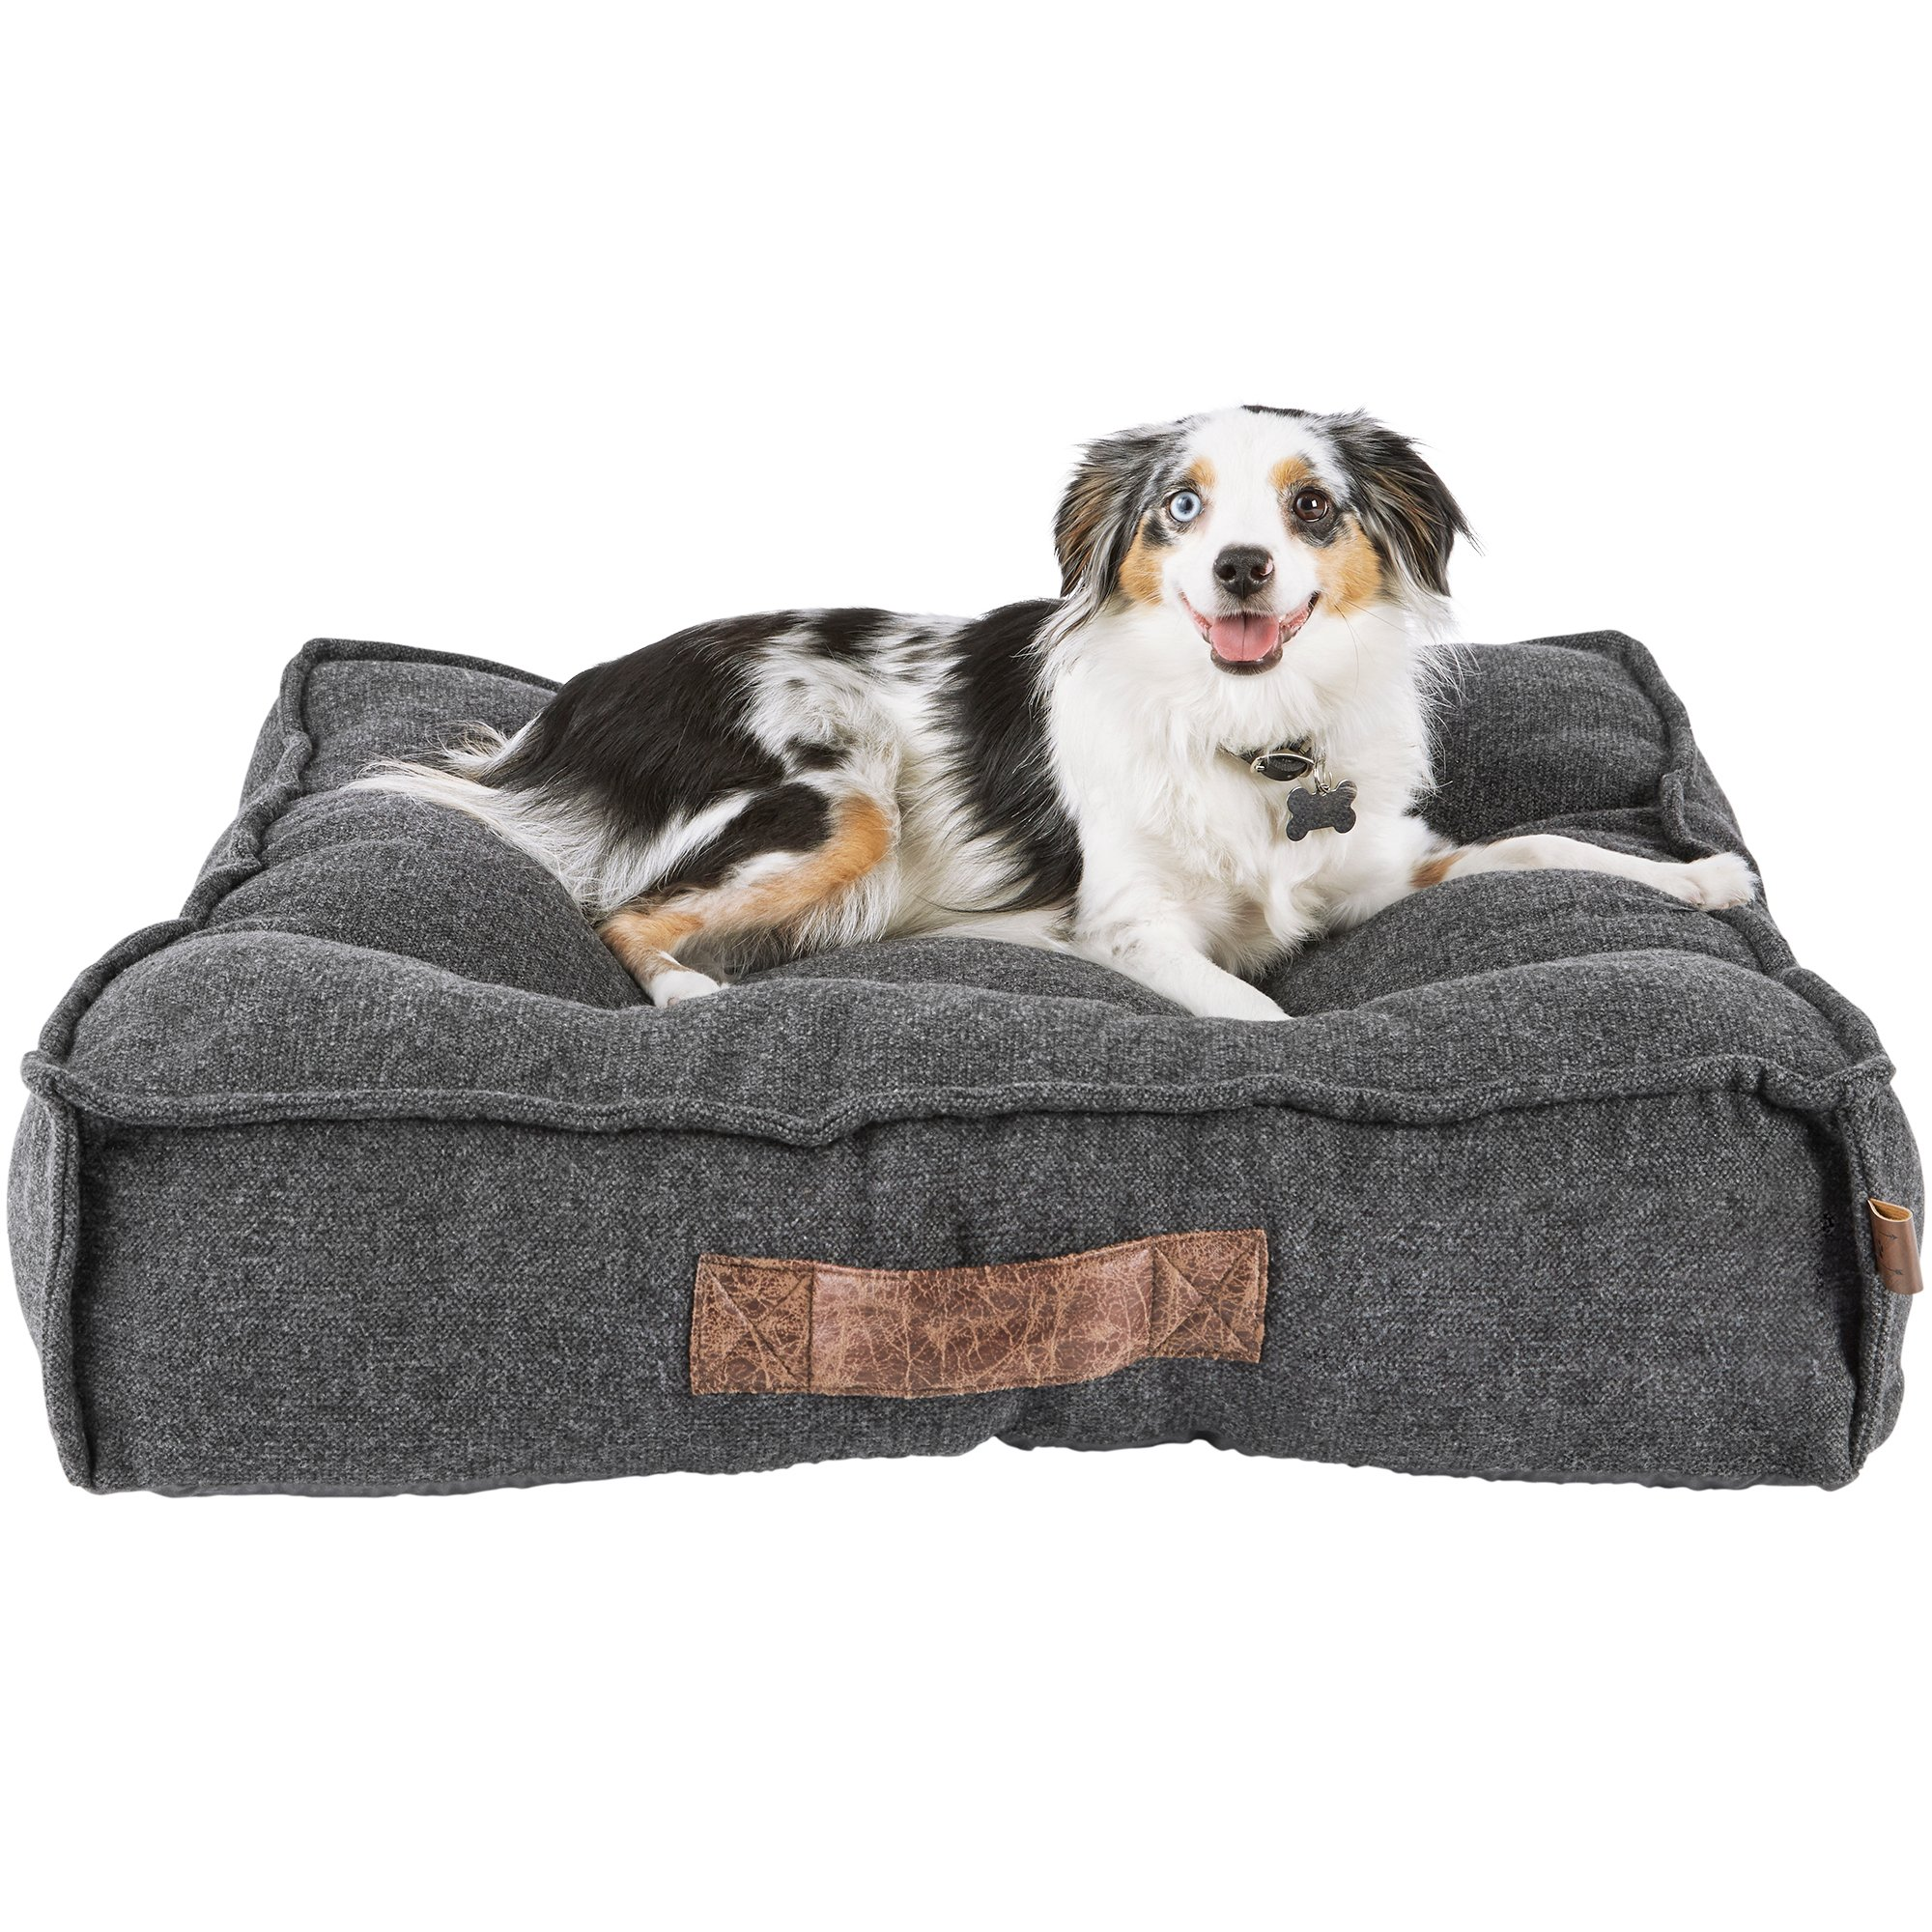 for pvc great kourt dogs bed dog dane company large larger image rover thor pet beds har view cats